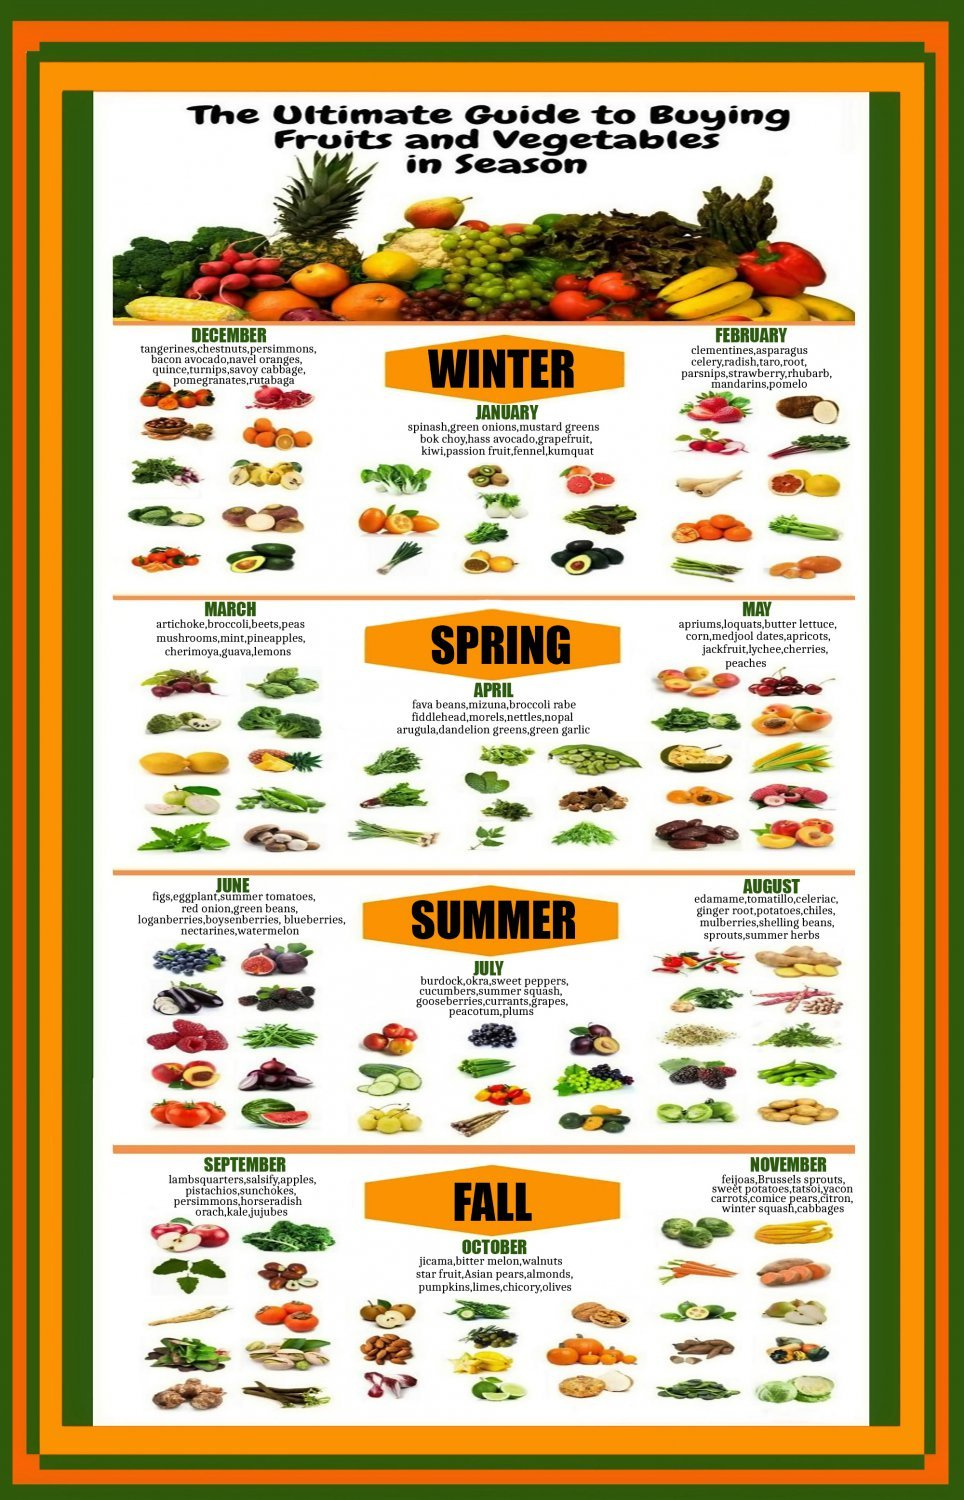 Ultimate Guide to Buying Fruits and Vegetables Chart 18x28 inches Poster Print